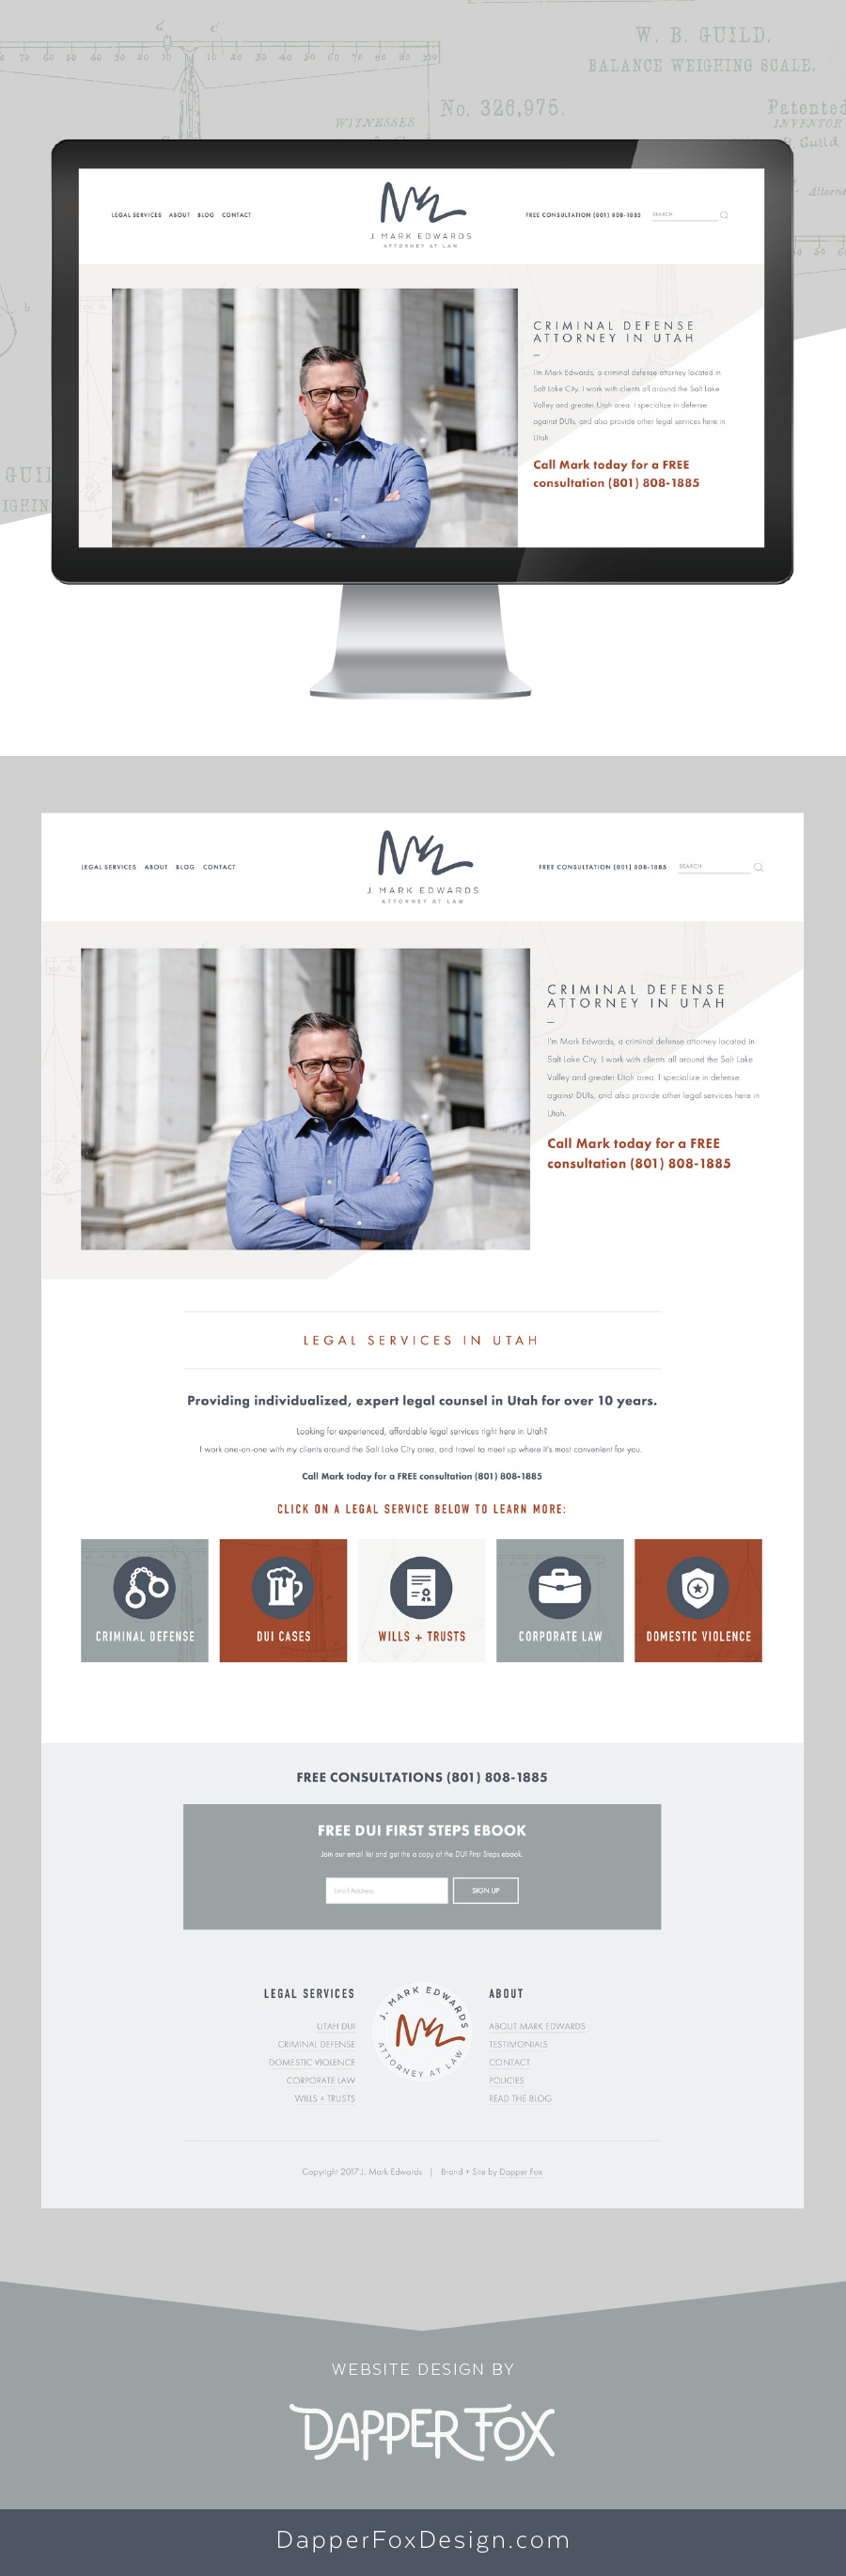 Home Page Design - Mark Edwards Lawyer Utah Squarespace Website Design and Branding by Dapper Fox Design